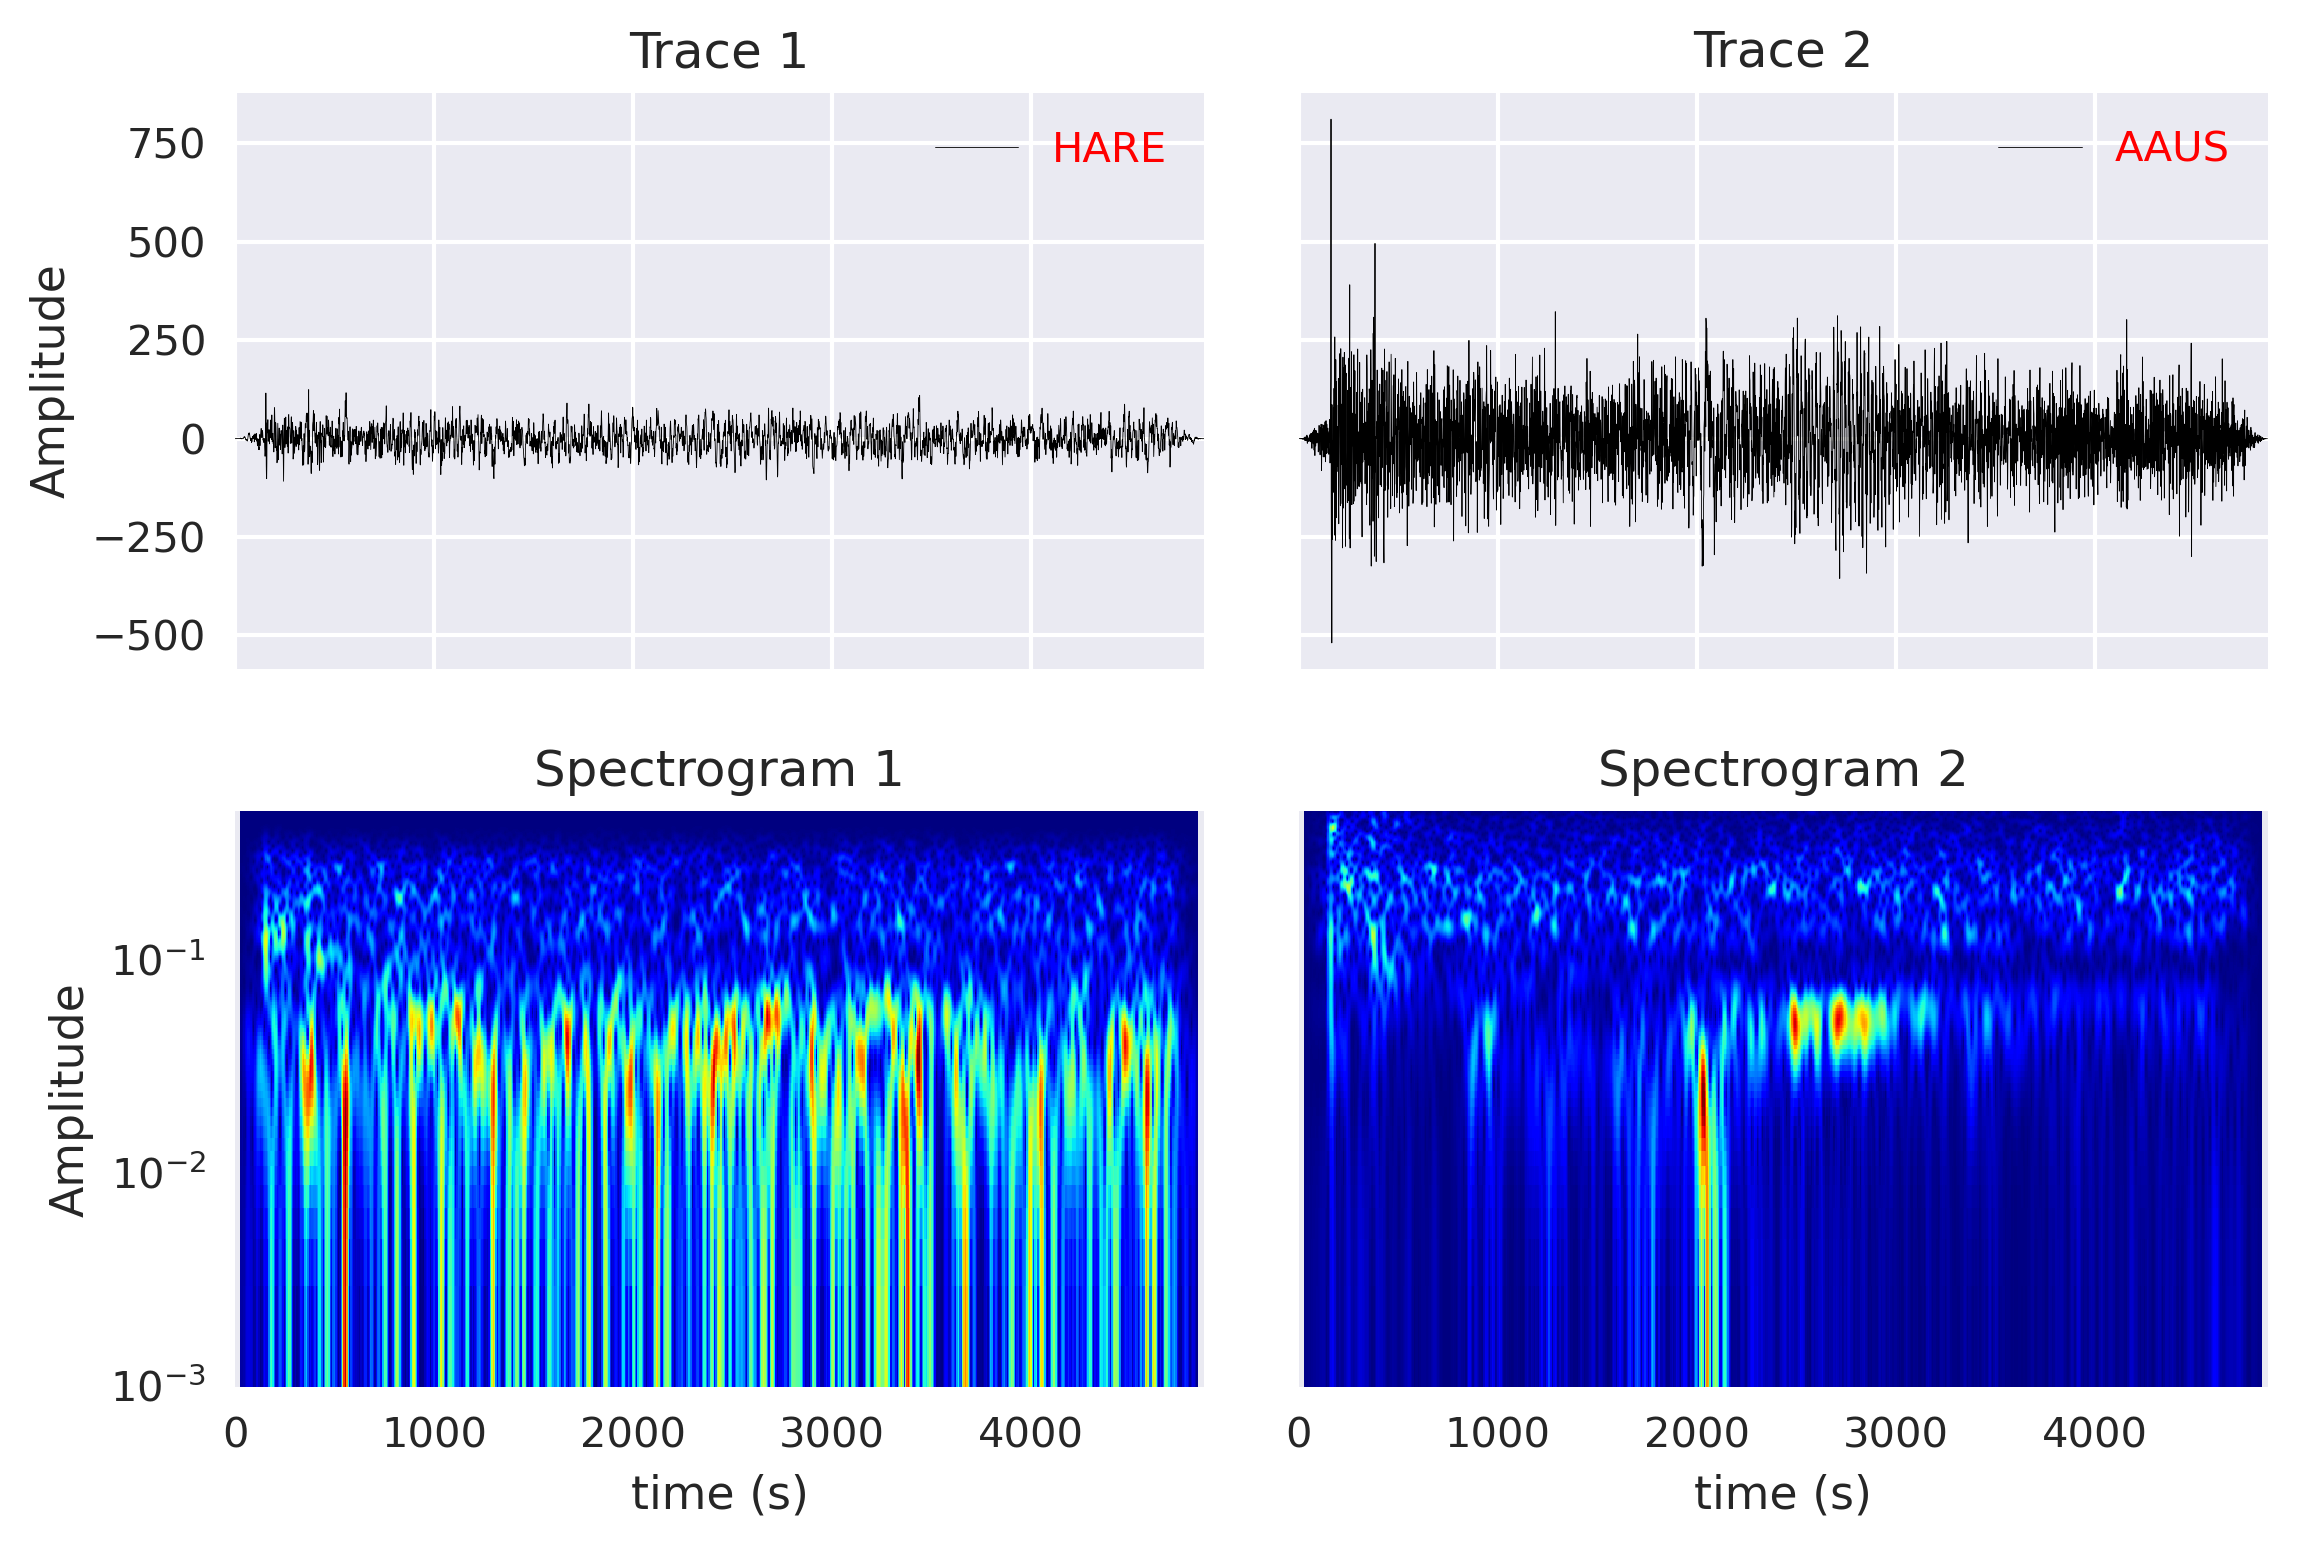 Computing cross-correlation and spectrogram of two seismic traces